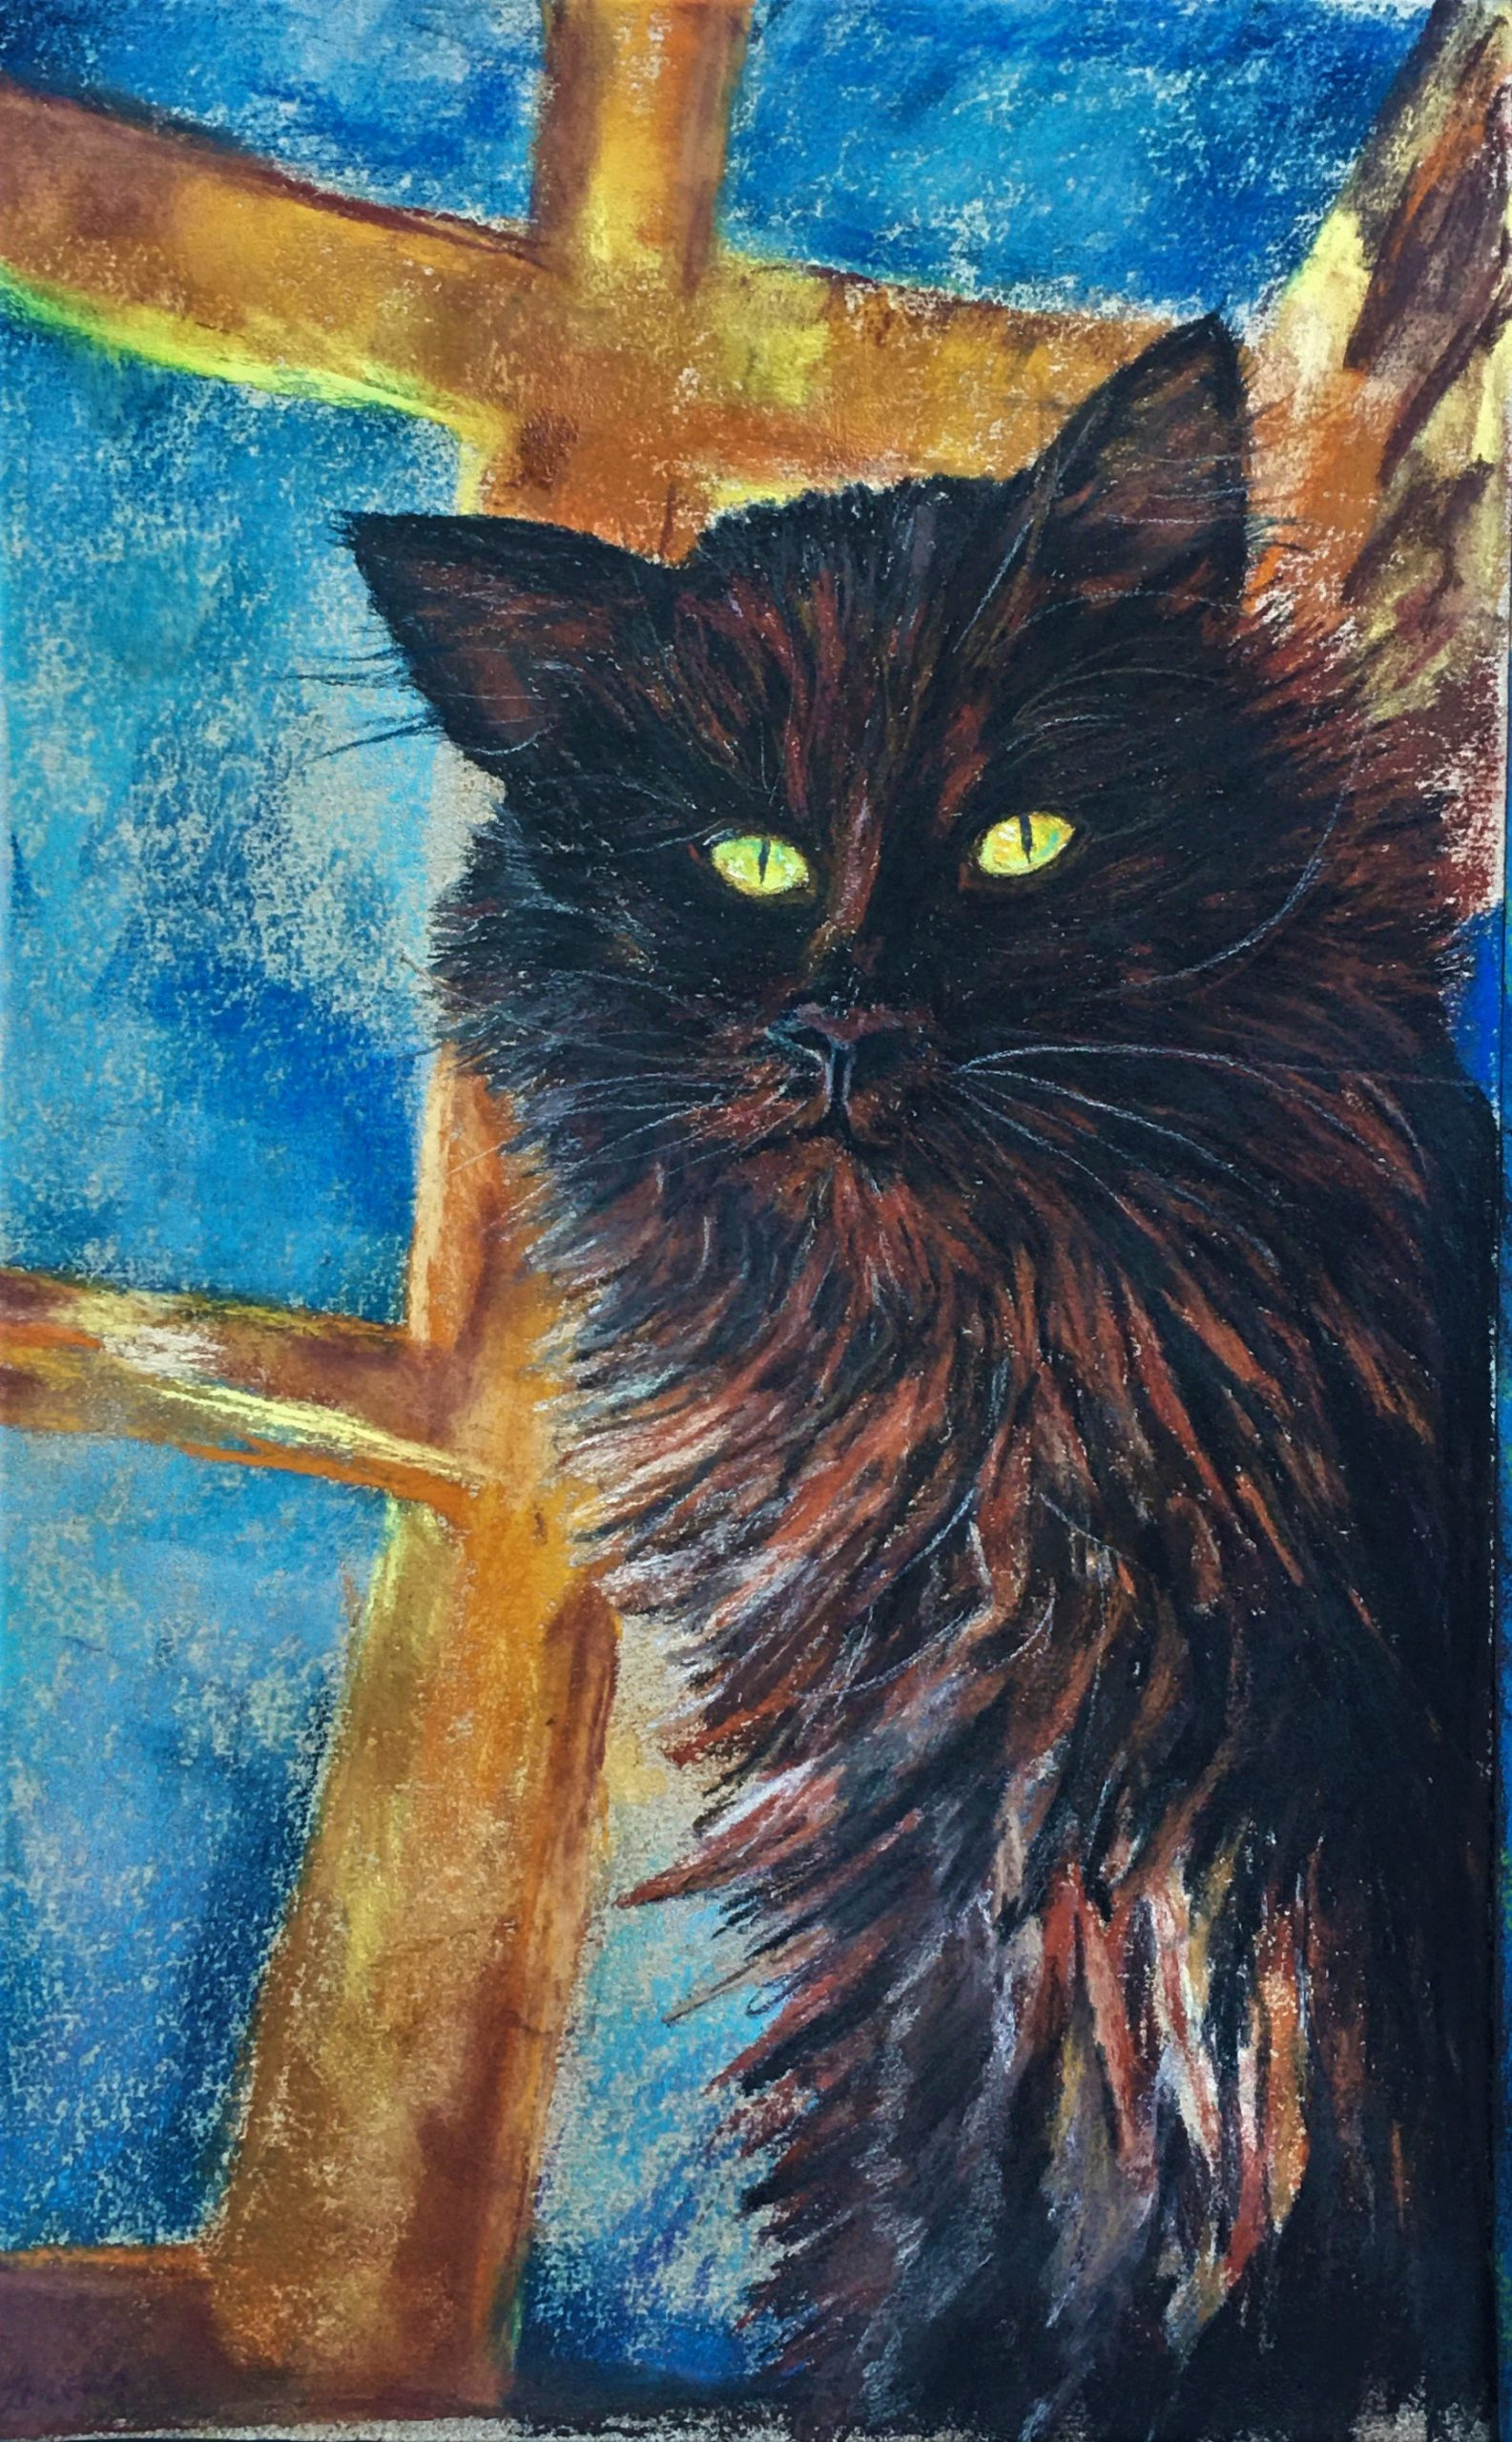 Midnight Cat in Daylight, By Lorena Doherty